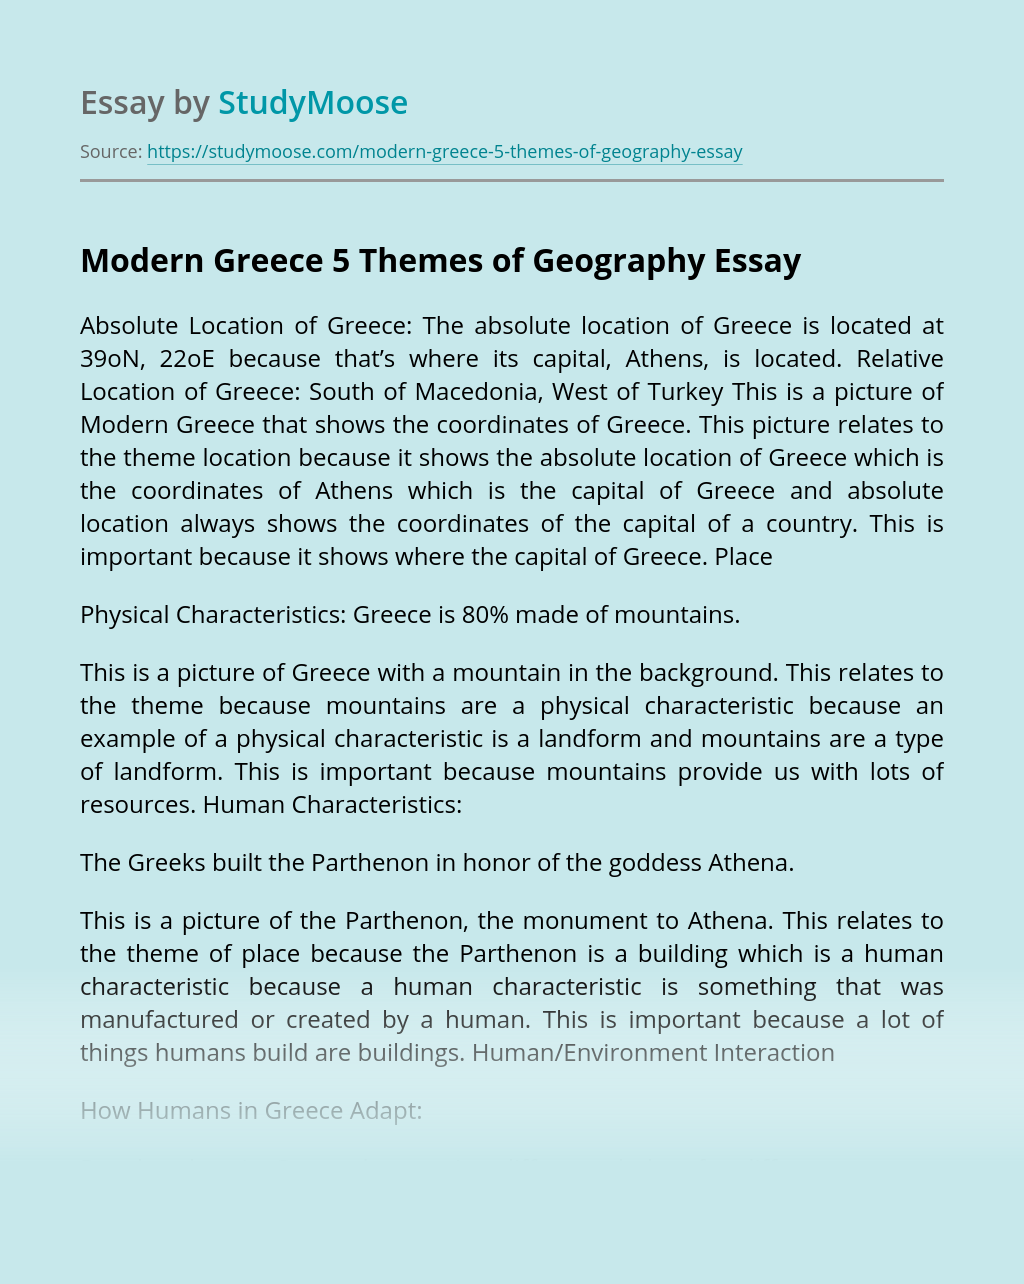 Modern Greece 5 Themes of Geography